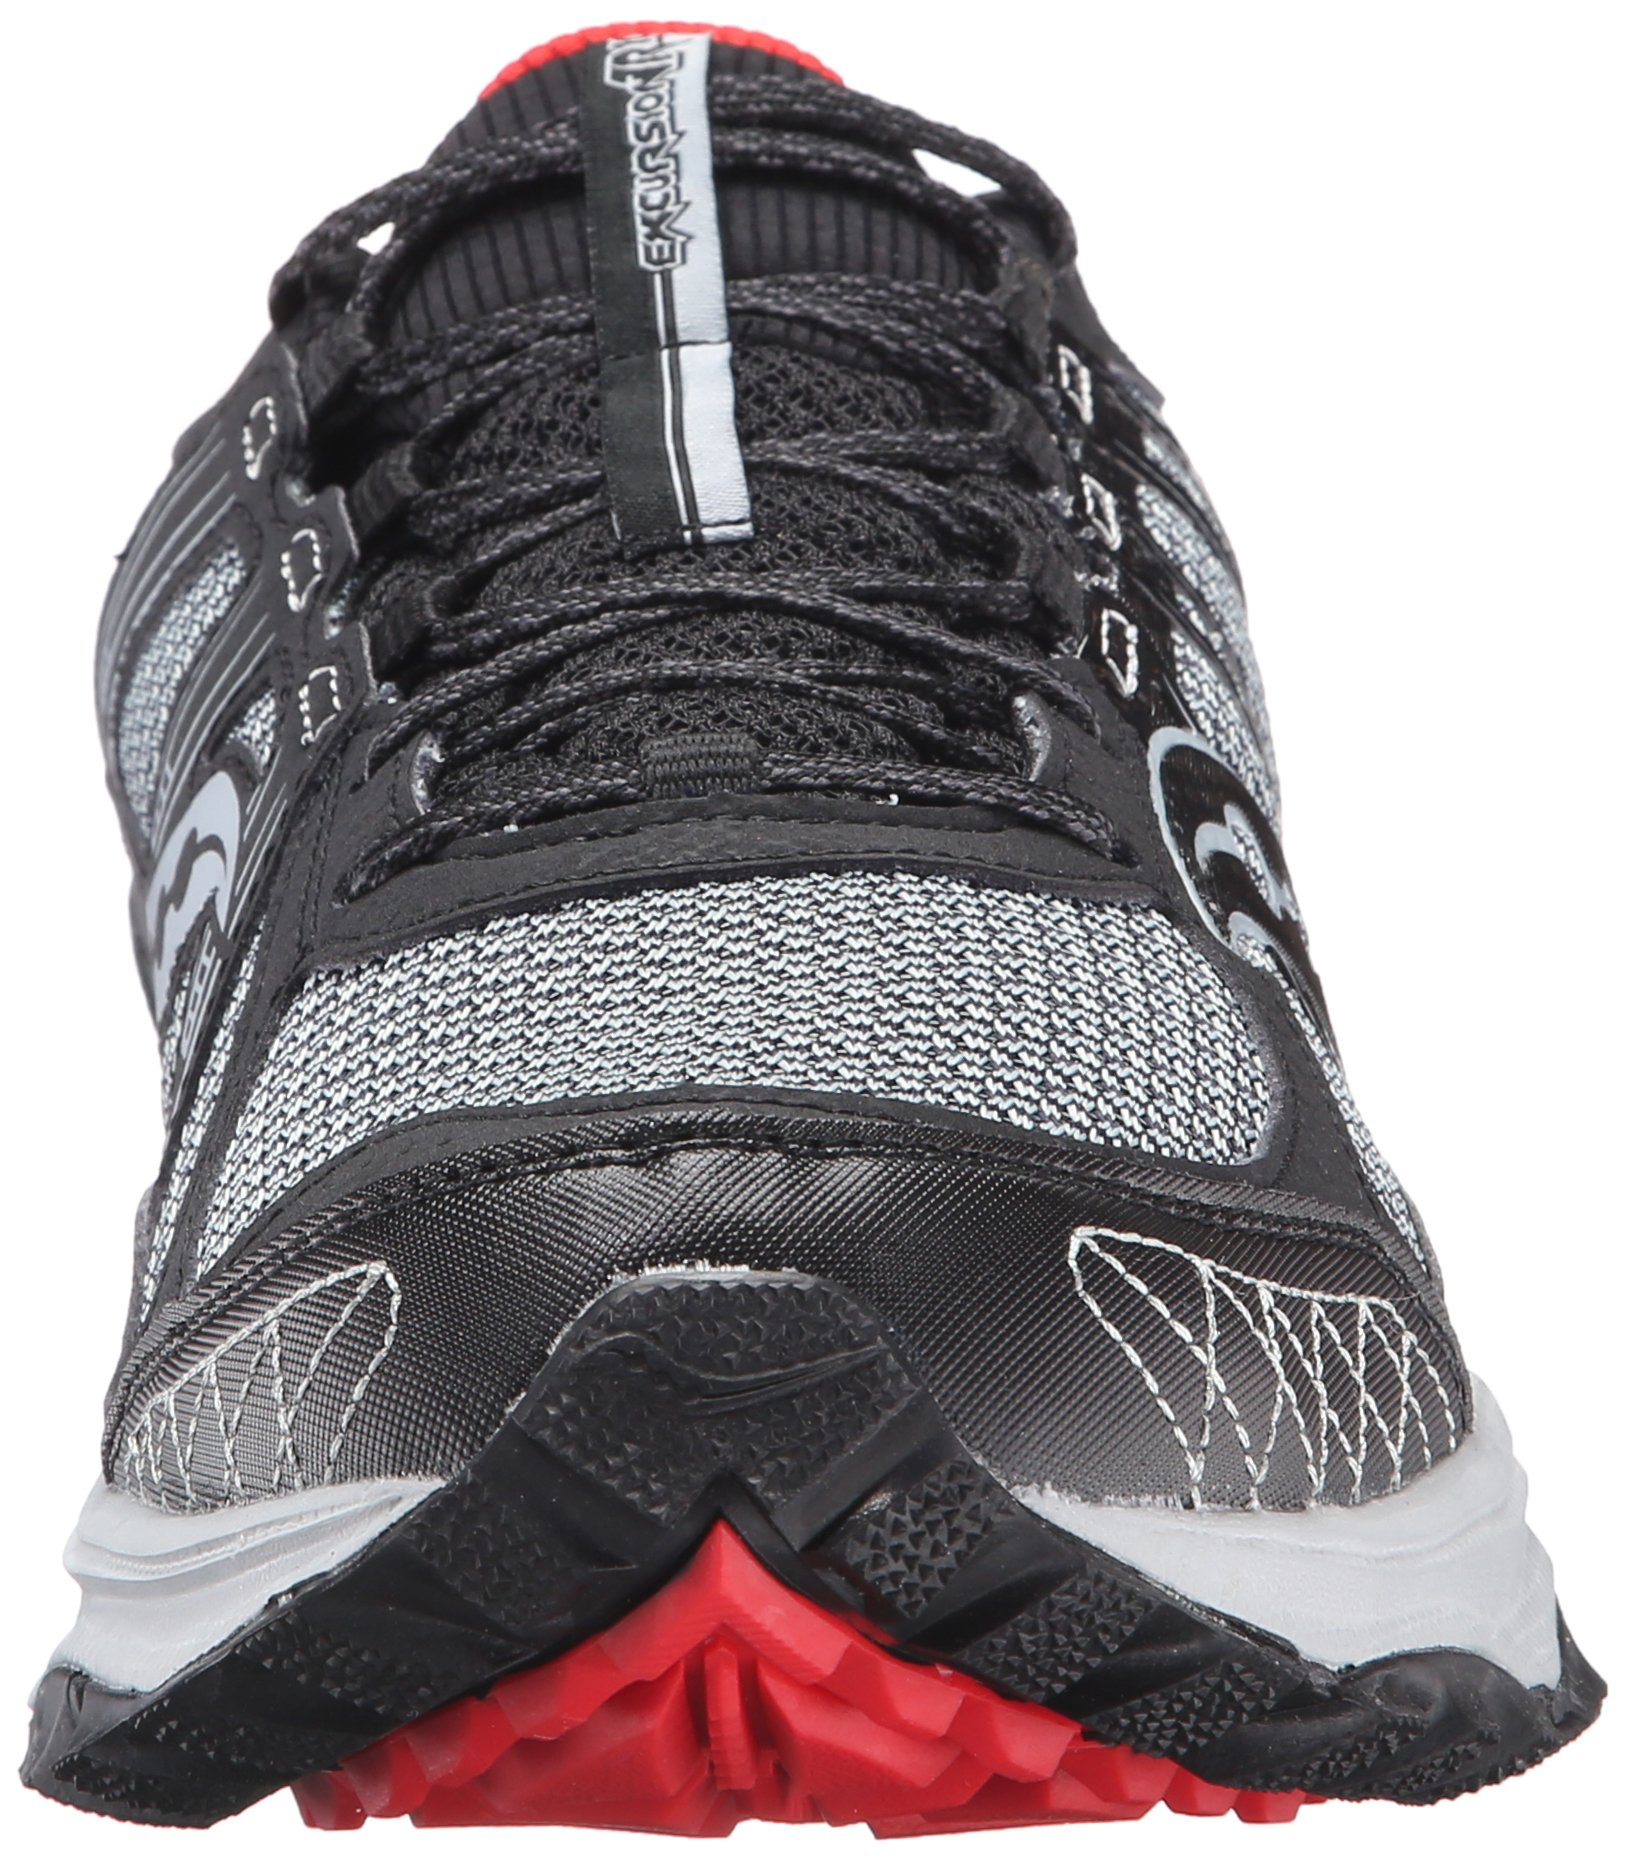 Saucony Men's Grid Excursion TR10 Running Shoe, Grey/Black/Red, 8 M US by Saucony (Image #4)